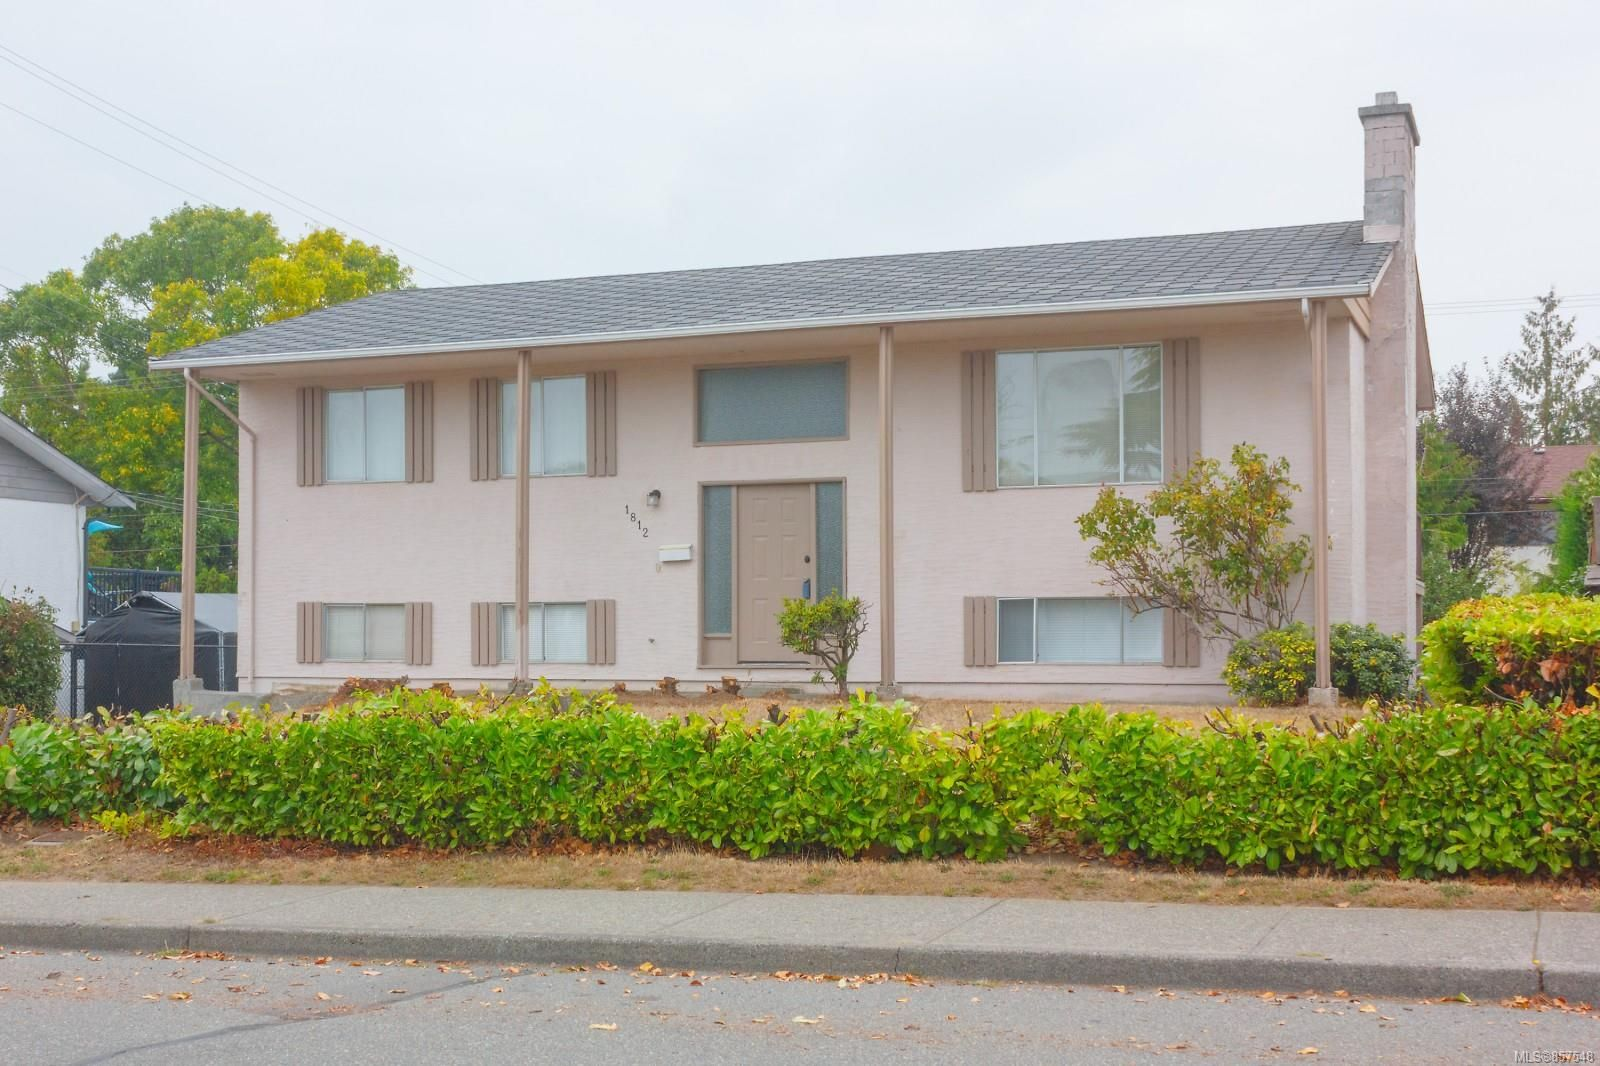 Main Photo: 1812 Laval Ave in : SE Gordon Head House for sale (Saanich East)  : MLS®# 857548